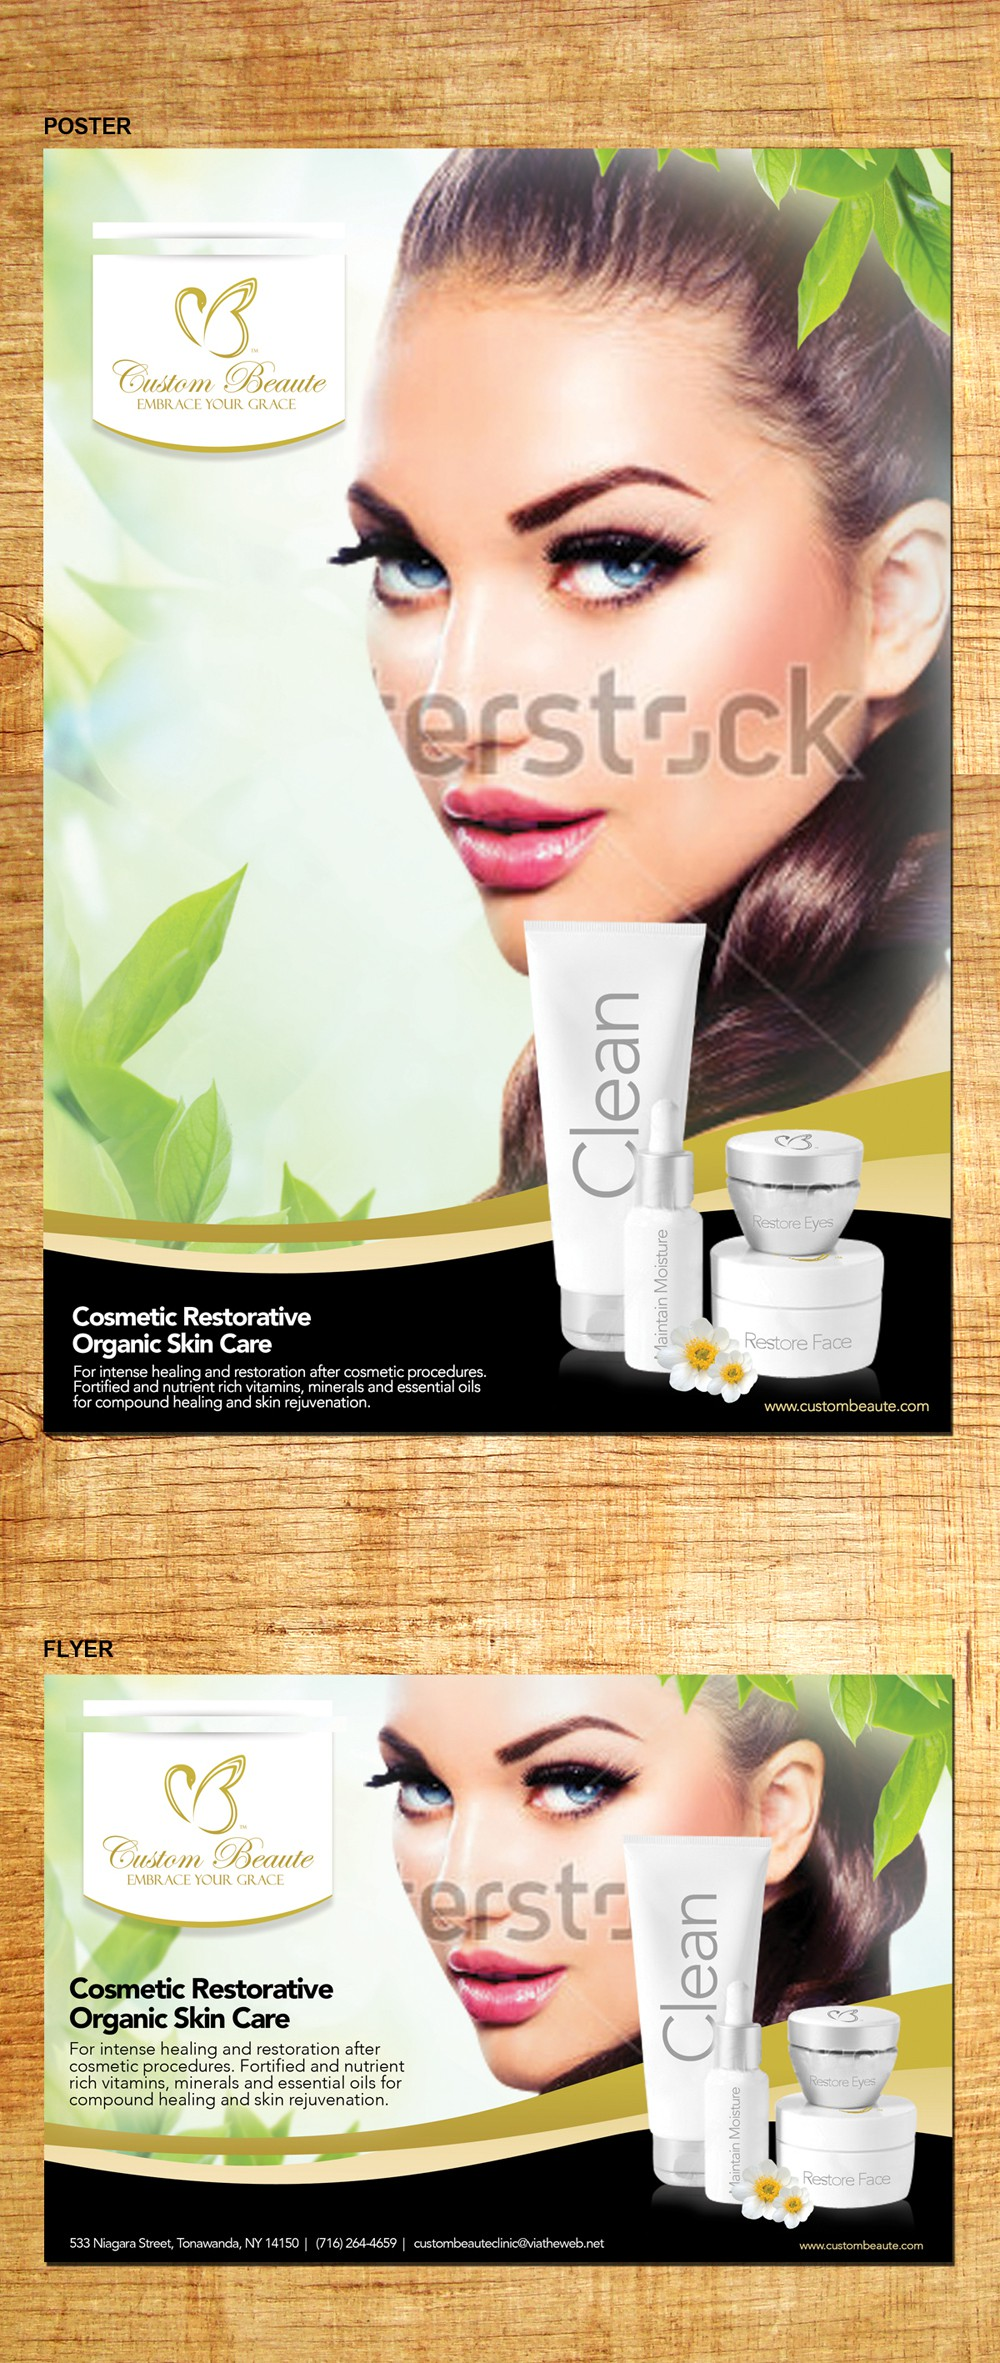 Organic Restorative Skin Care line poster being featured in Hollywood!